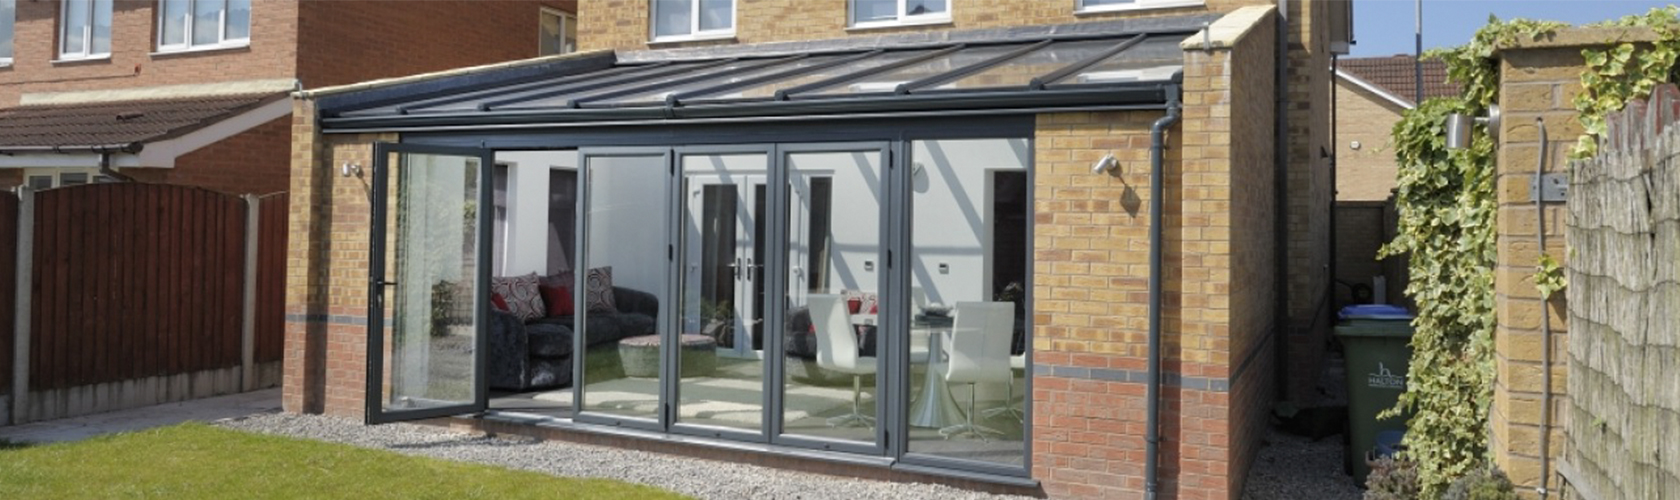 lean-to-conservatories-banner